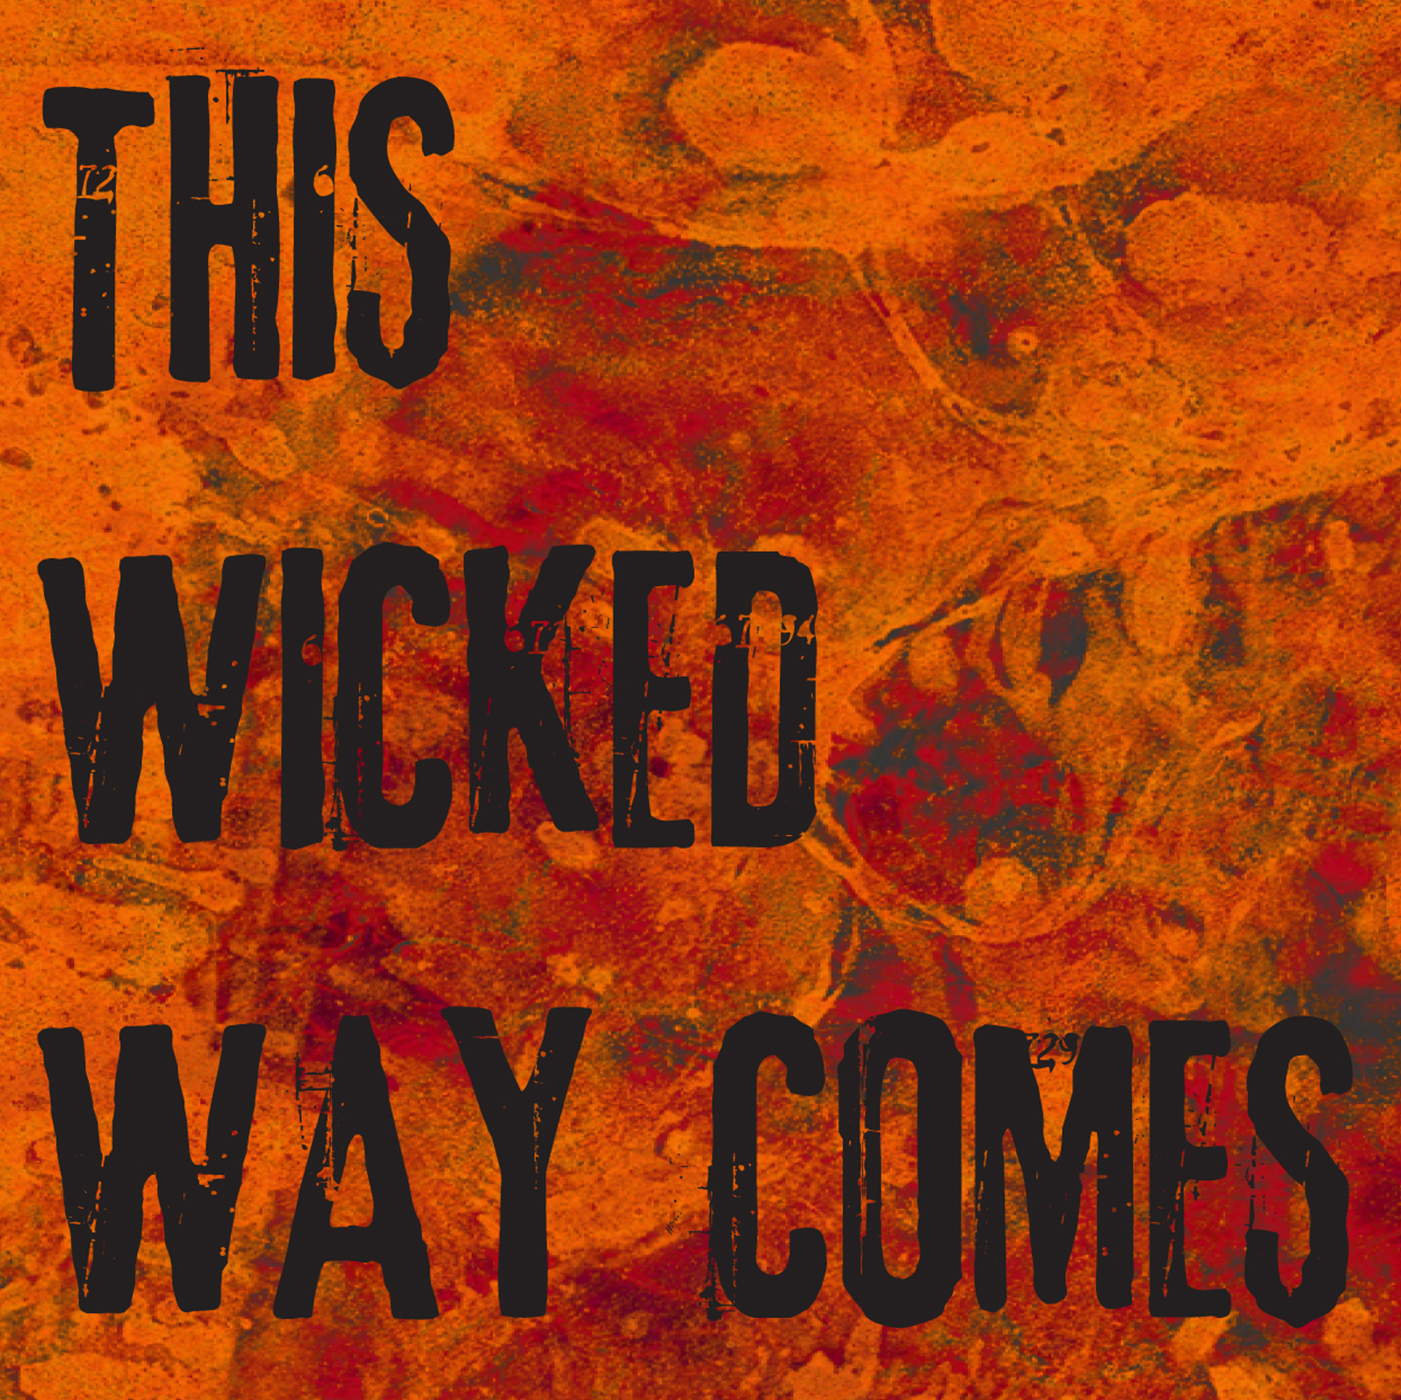 This Wicked Way Comes – Episode 6: A Hard Morning Light